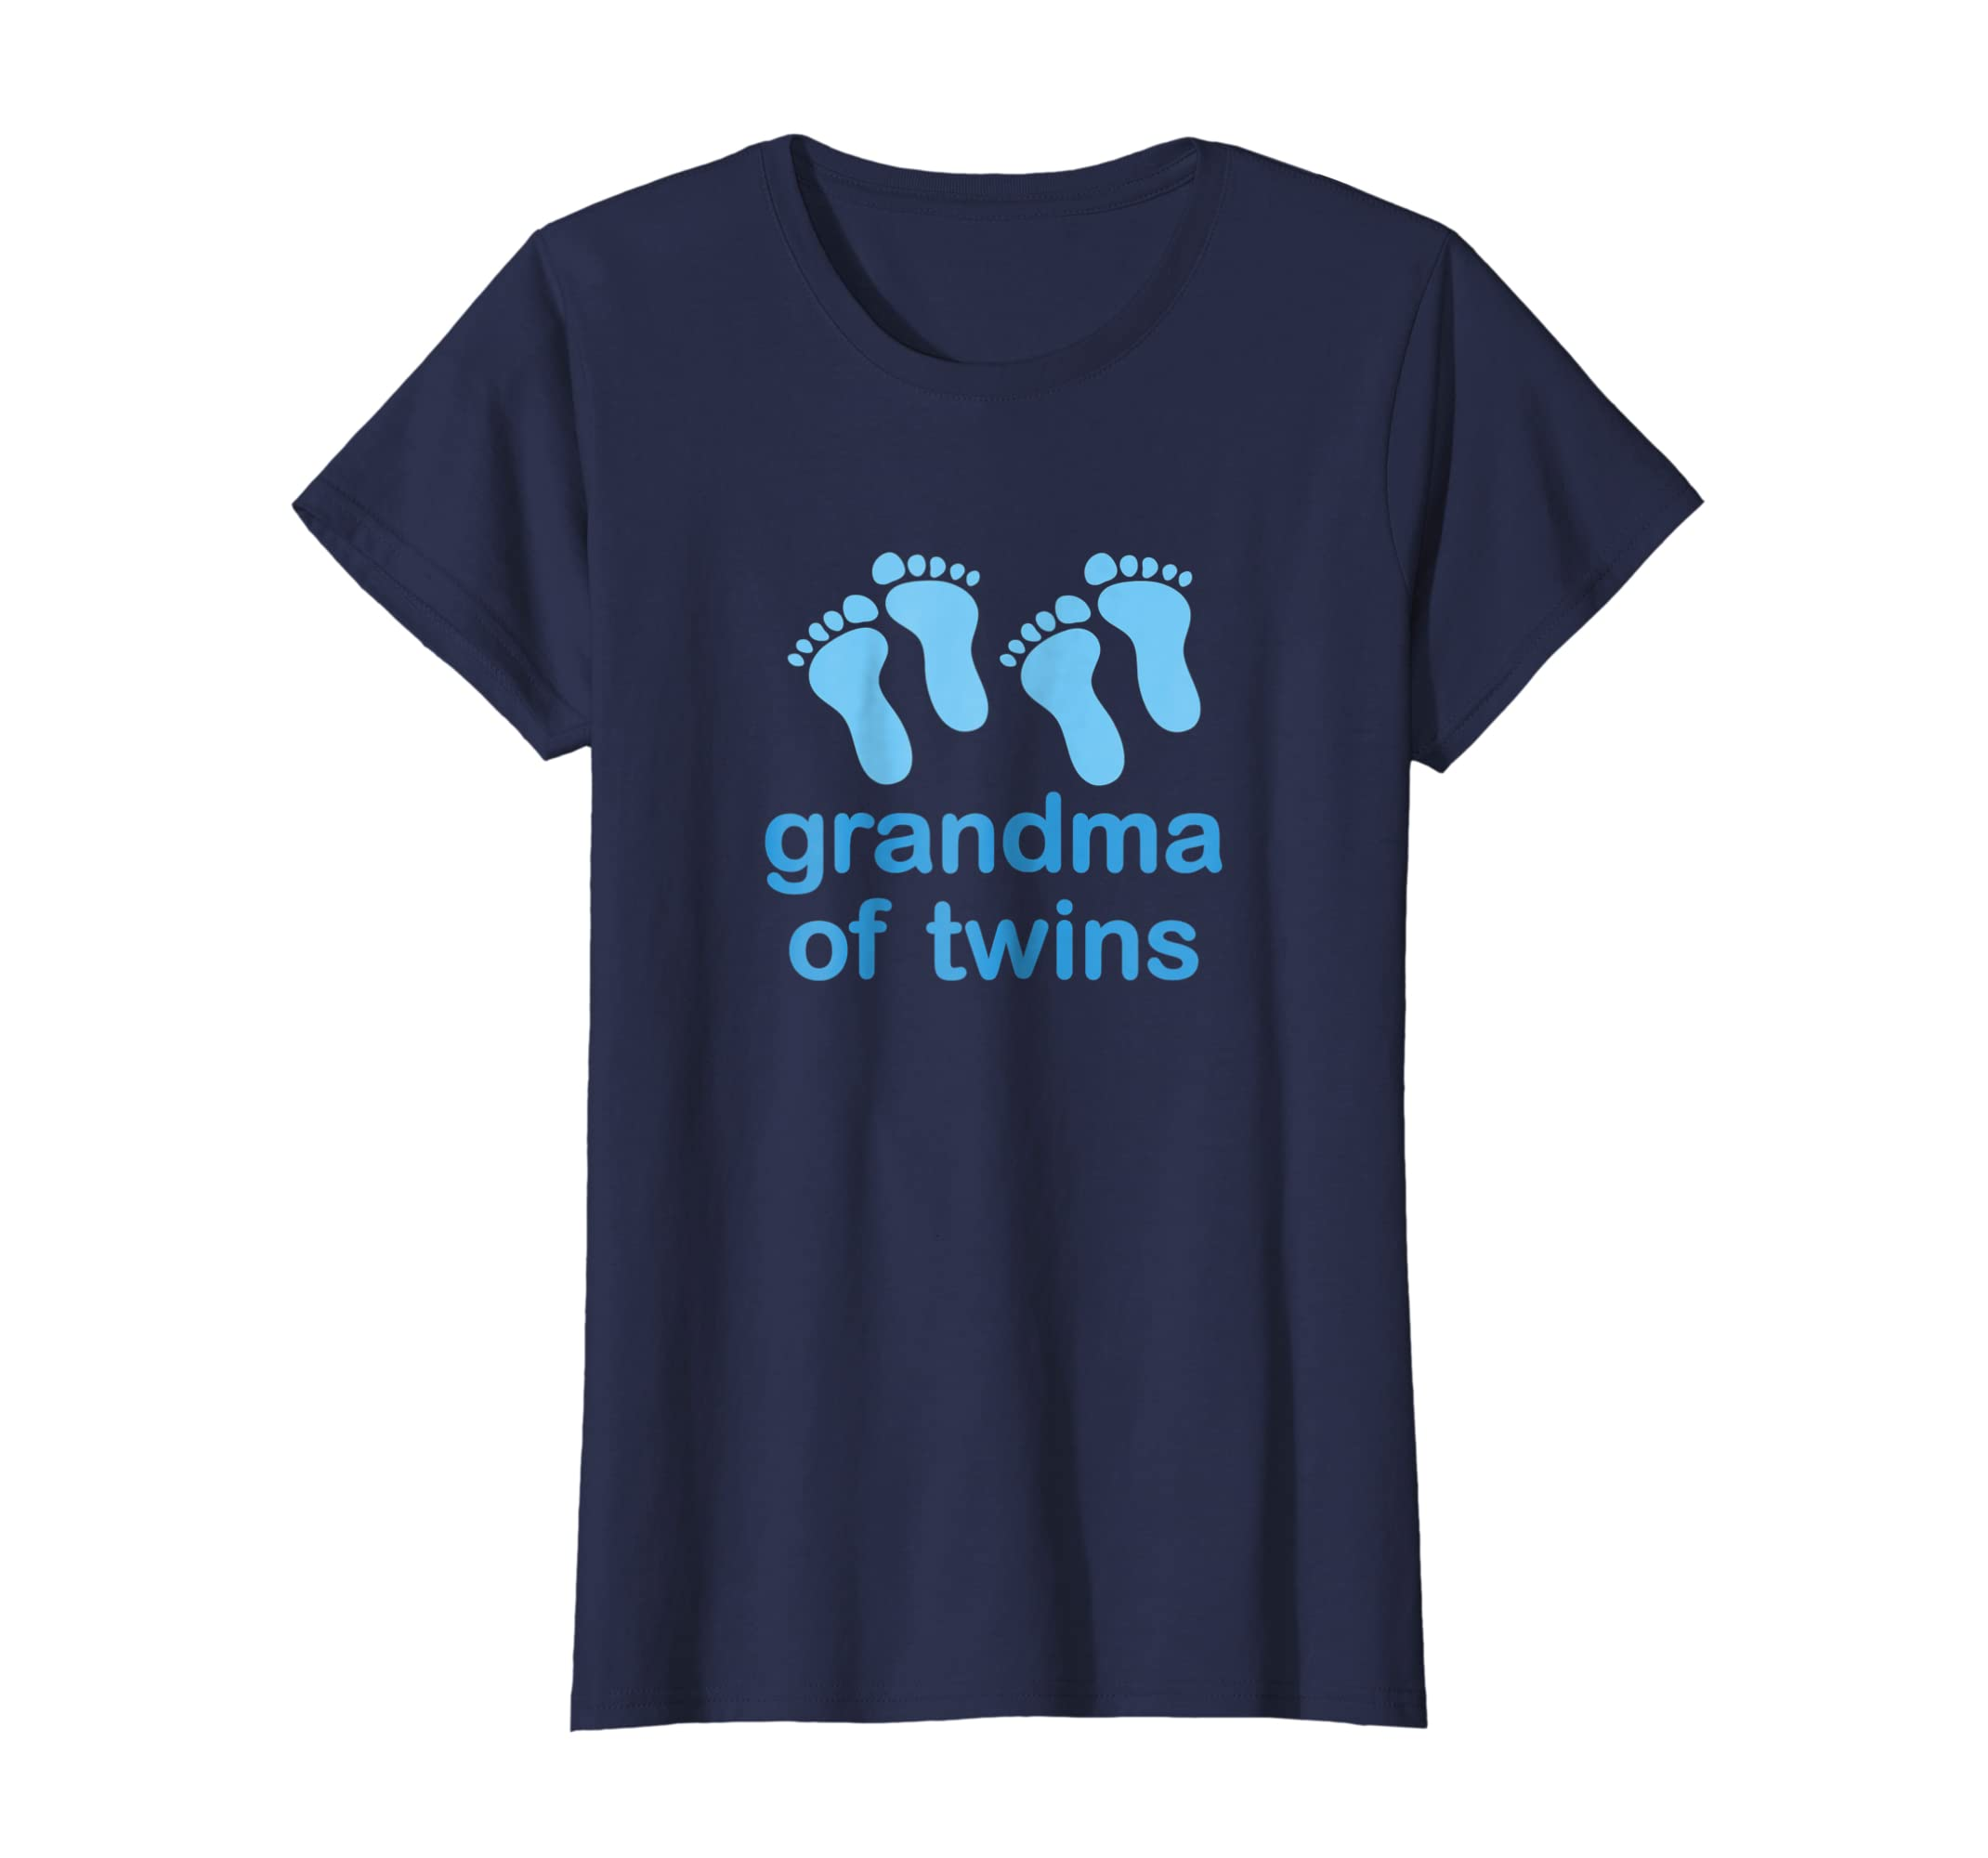 aa04beae5 Amazon.com: Grandma Of Twins Shirt New Grandmother Tee: Clothing